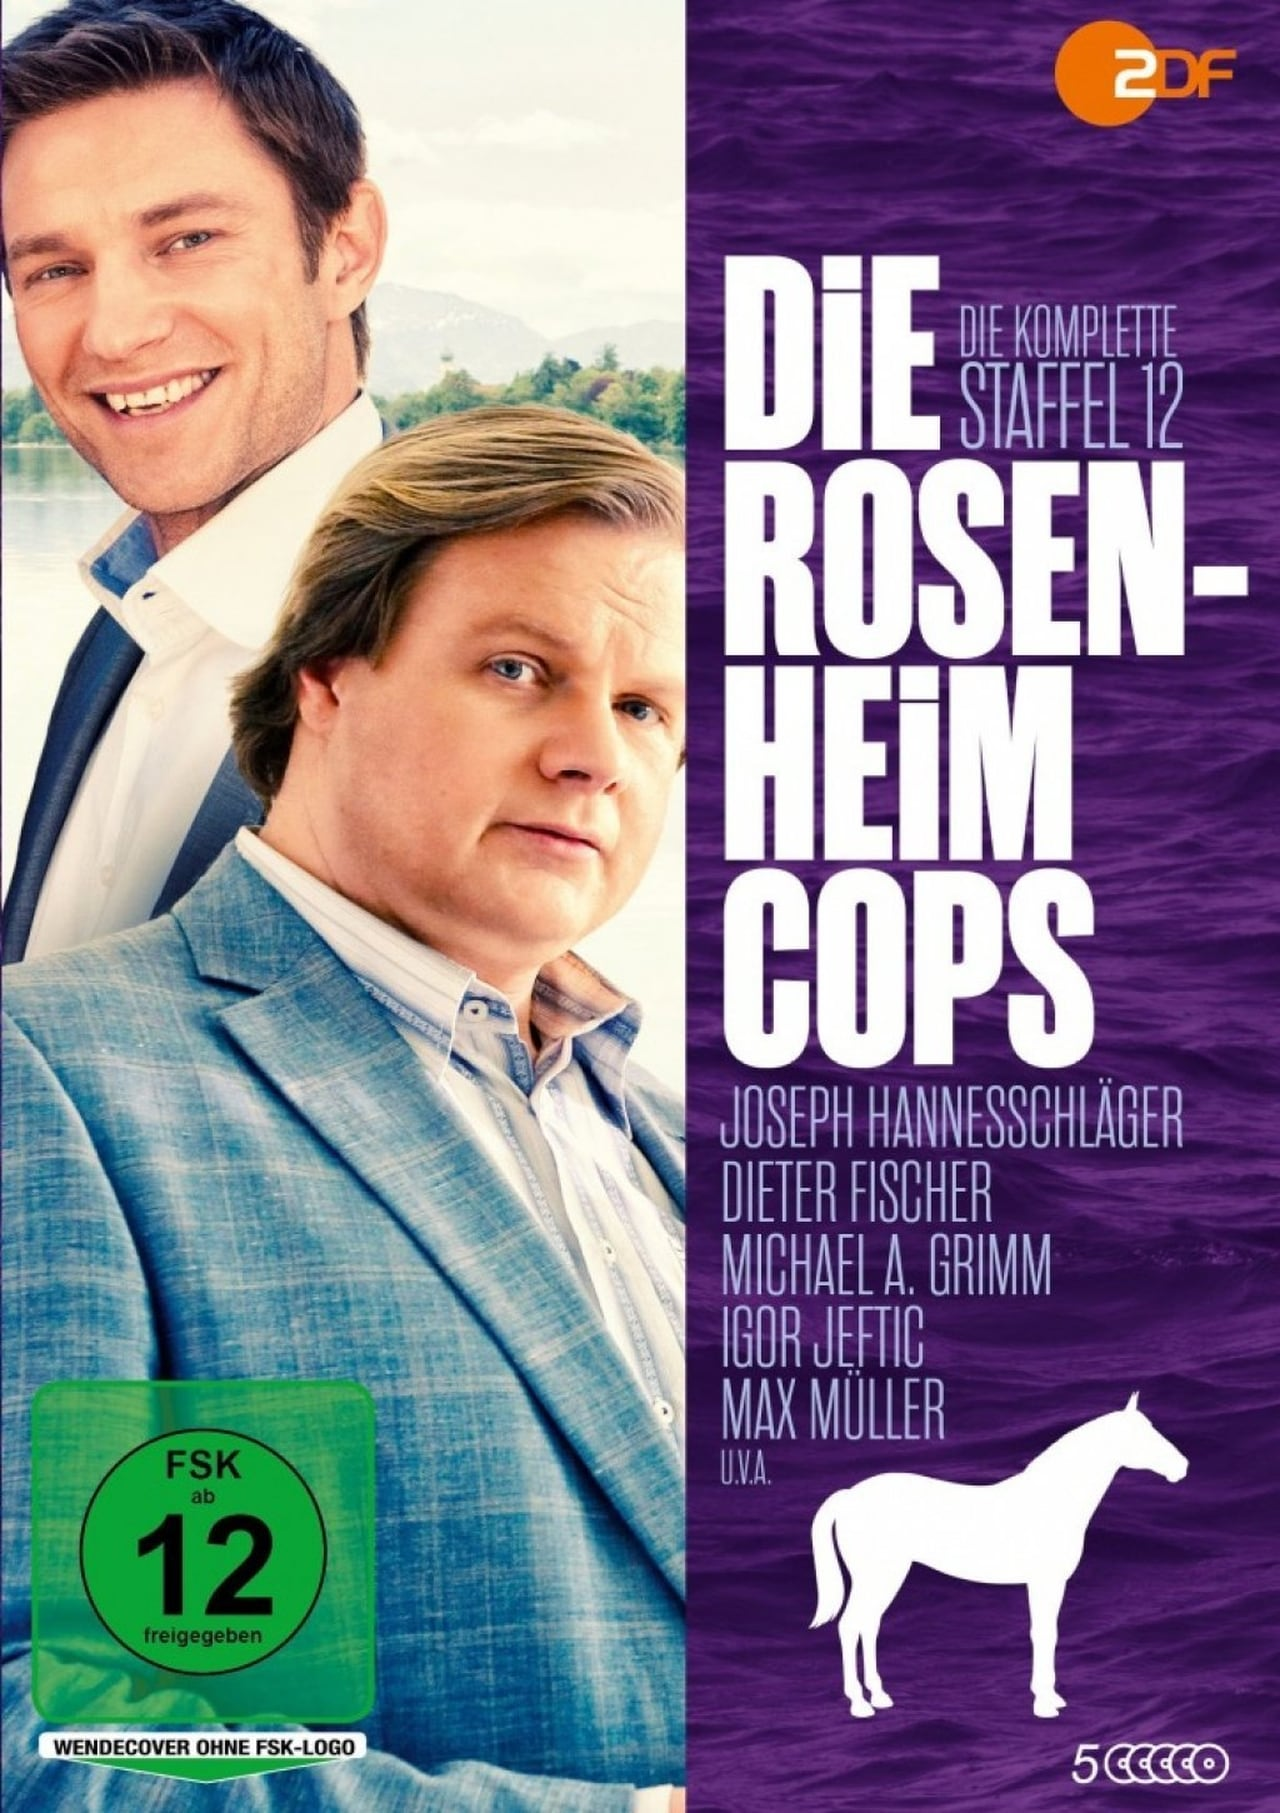 Putlocker The Rosenheim Cops Season 12 (2012)